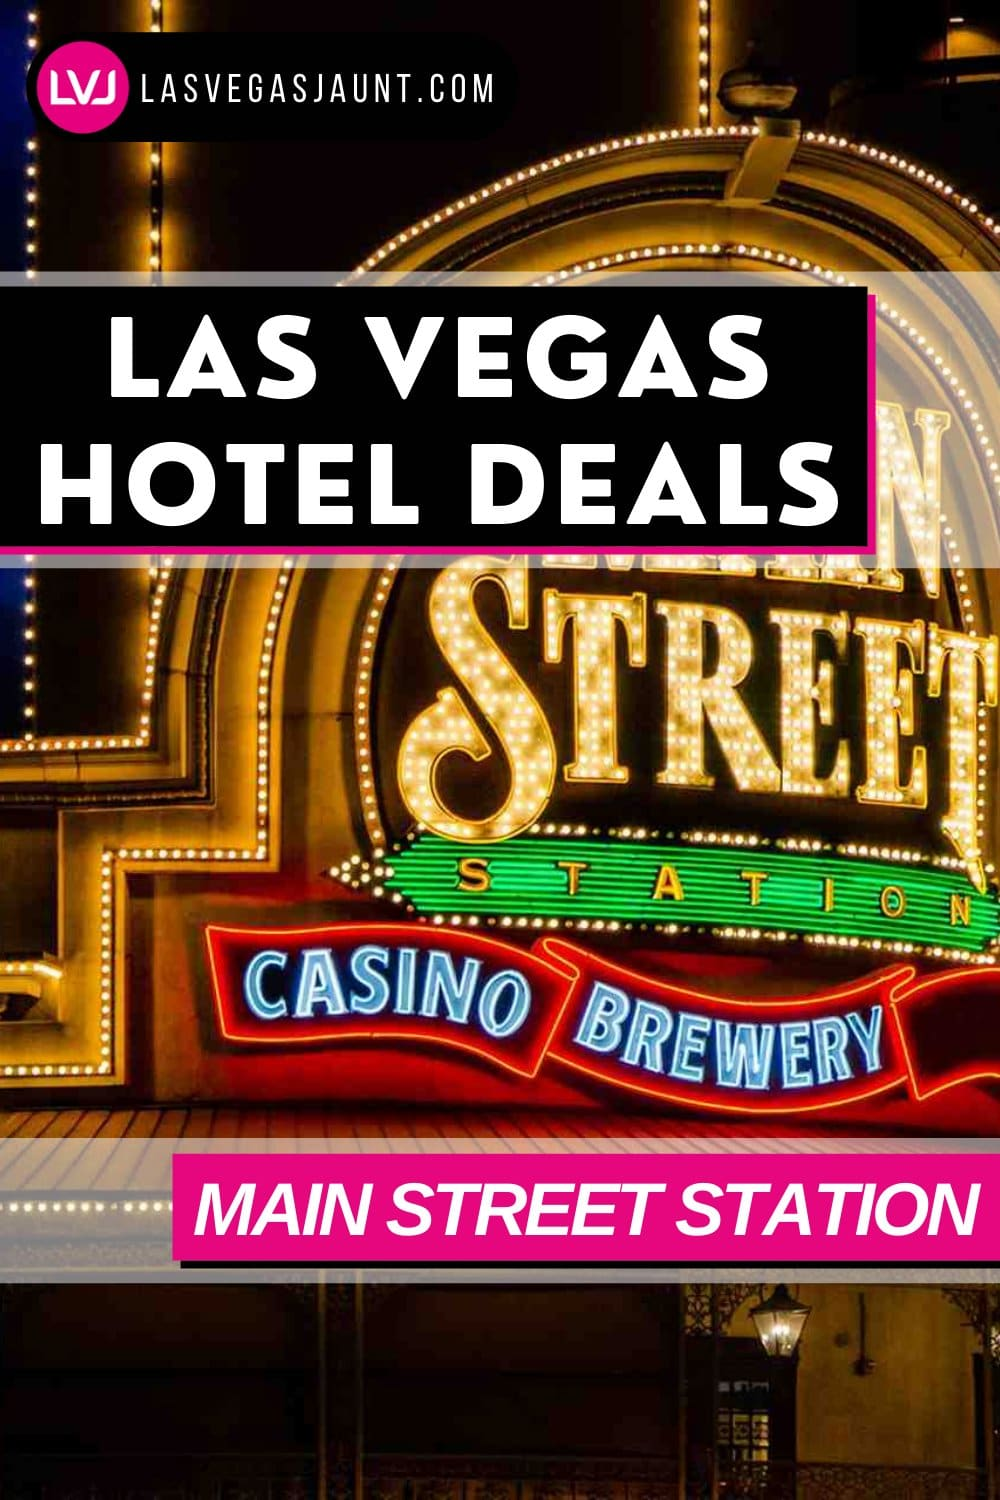 Main street Station Hotel Las Vegas Deals Promo Codes & Discounts